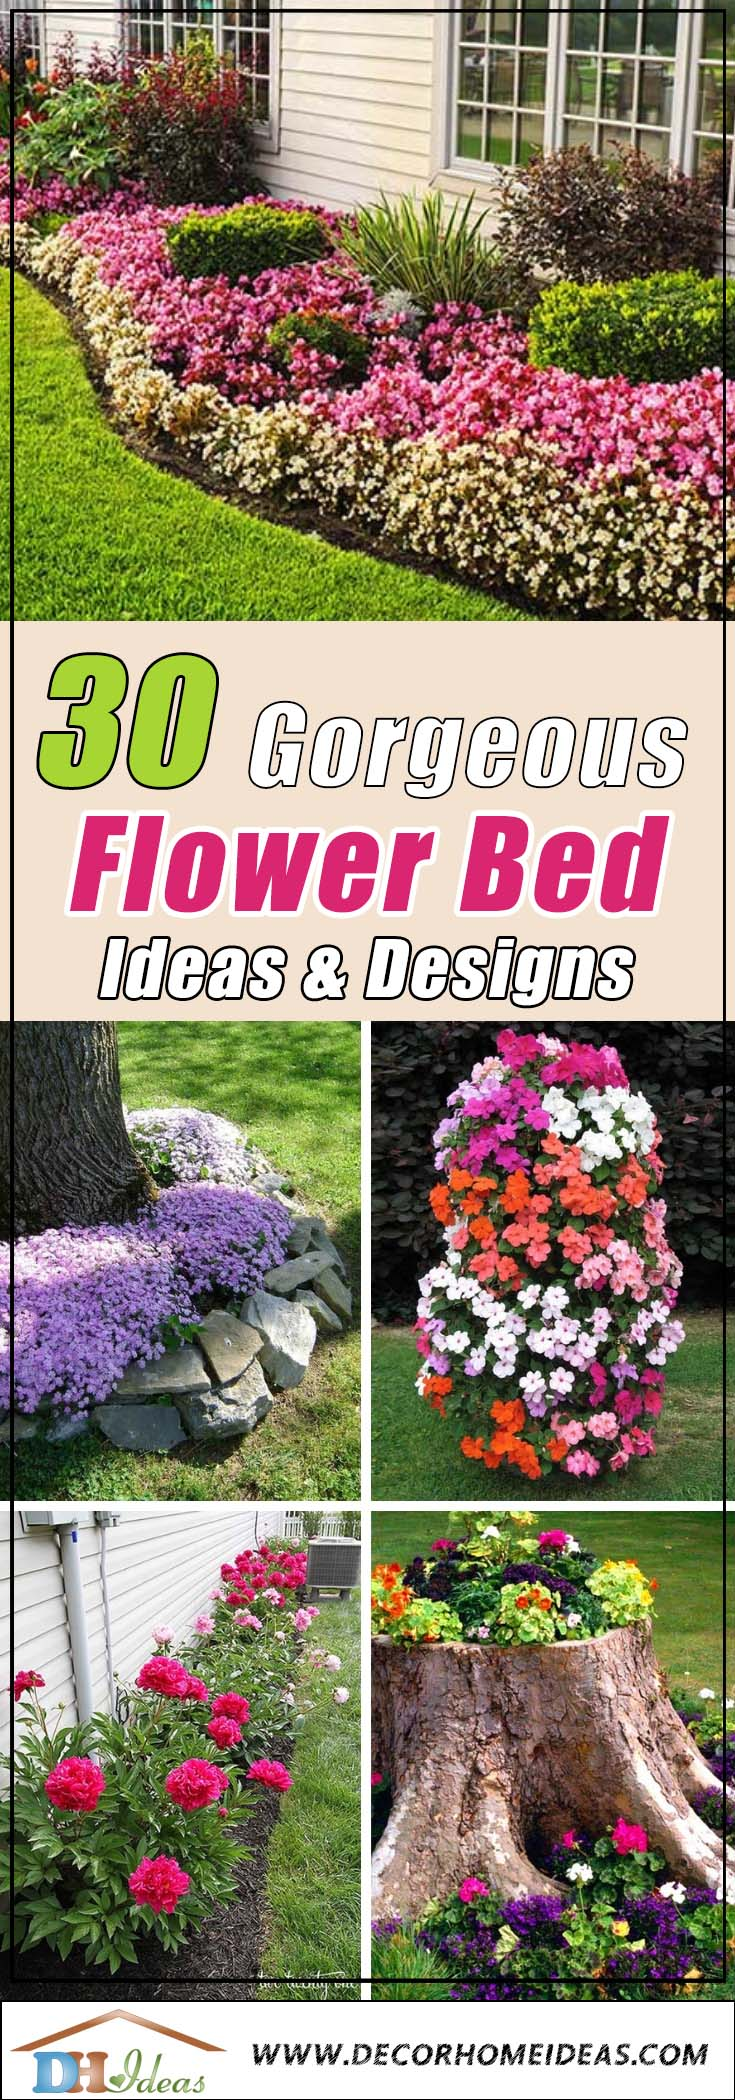 30 Gorgeous Flower Bed Ideas To Try Today | Best flower bed and flower planter ideas you can try today in your backyard or garden. #flowerbed  #gardening #decorhomeideas